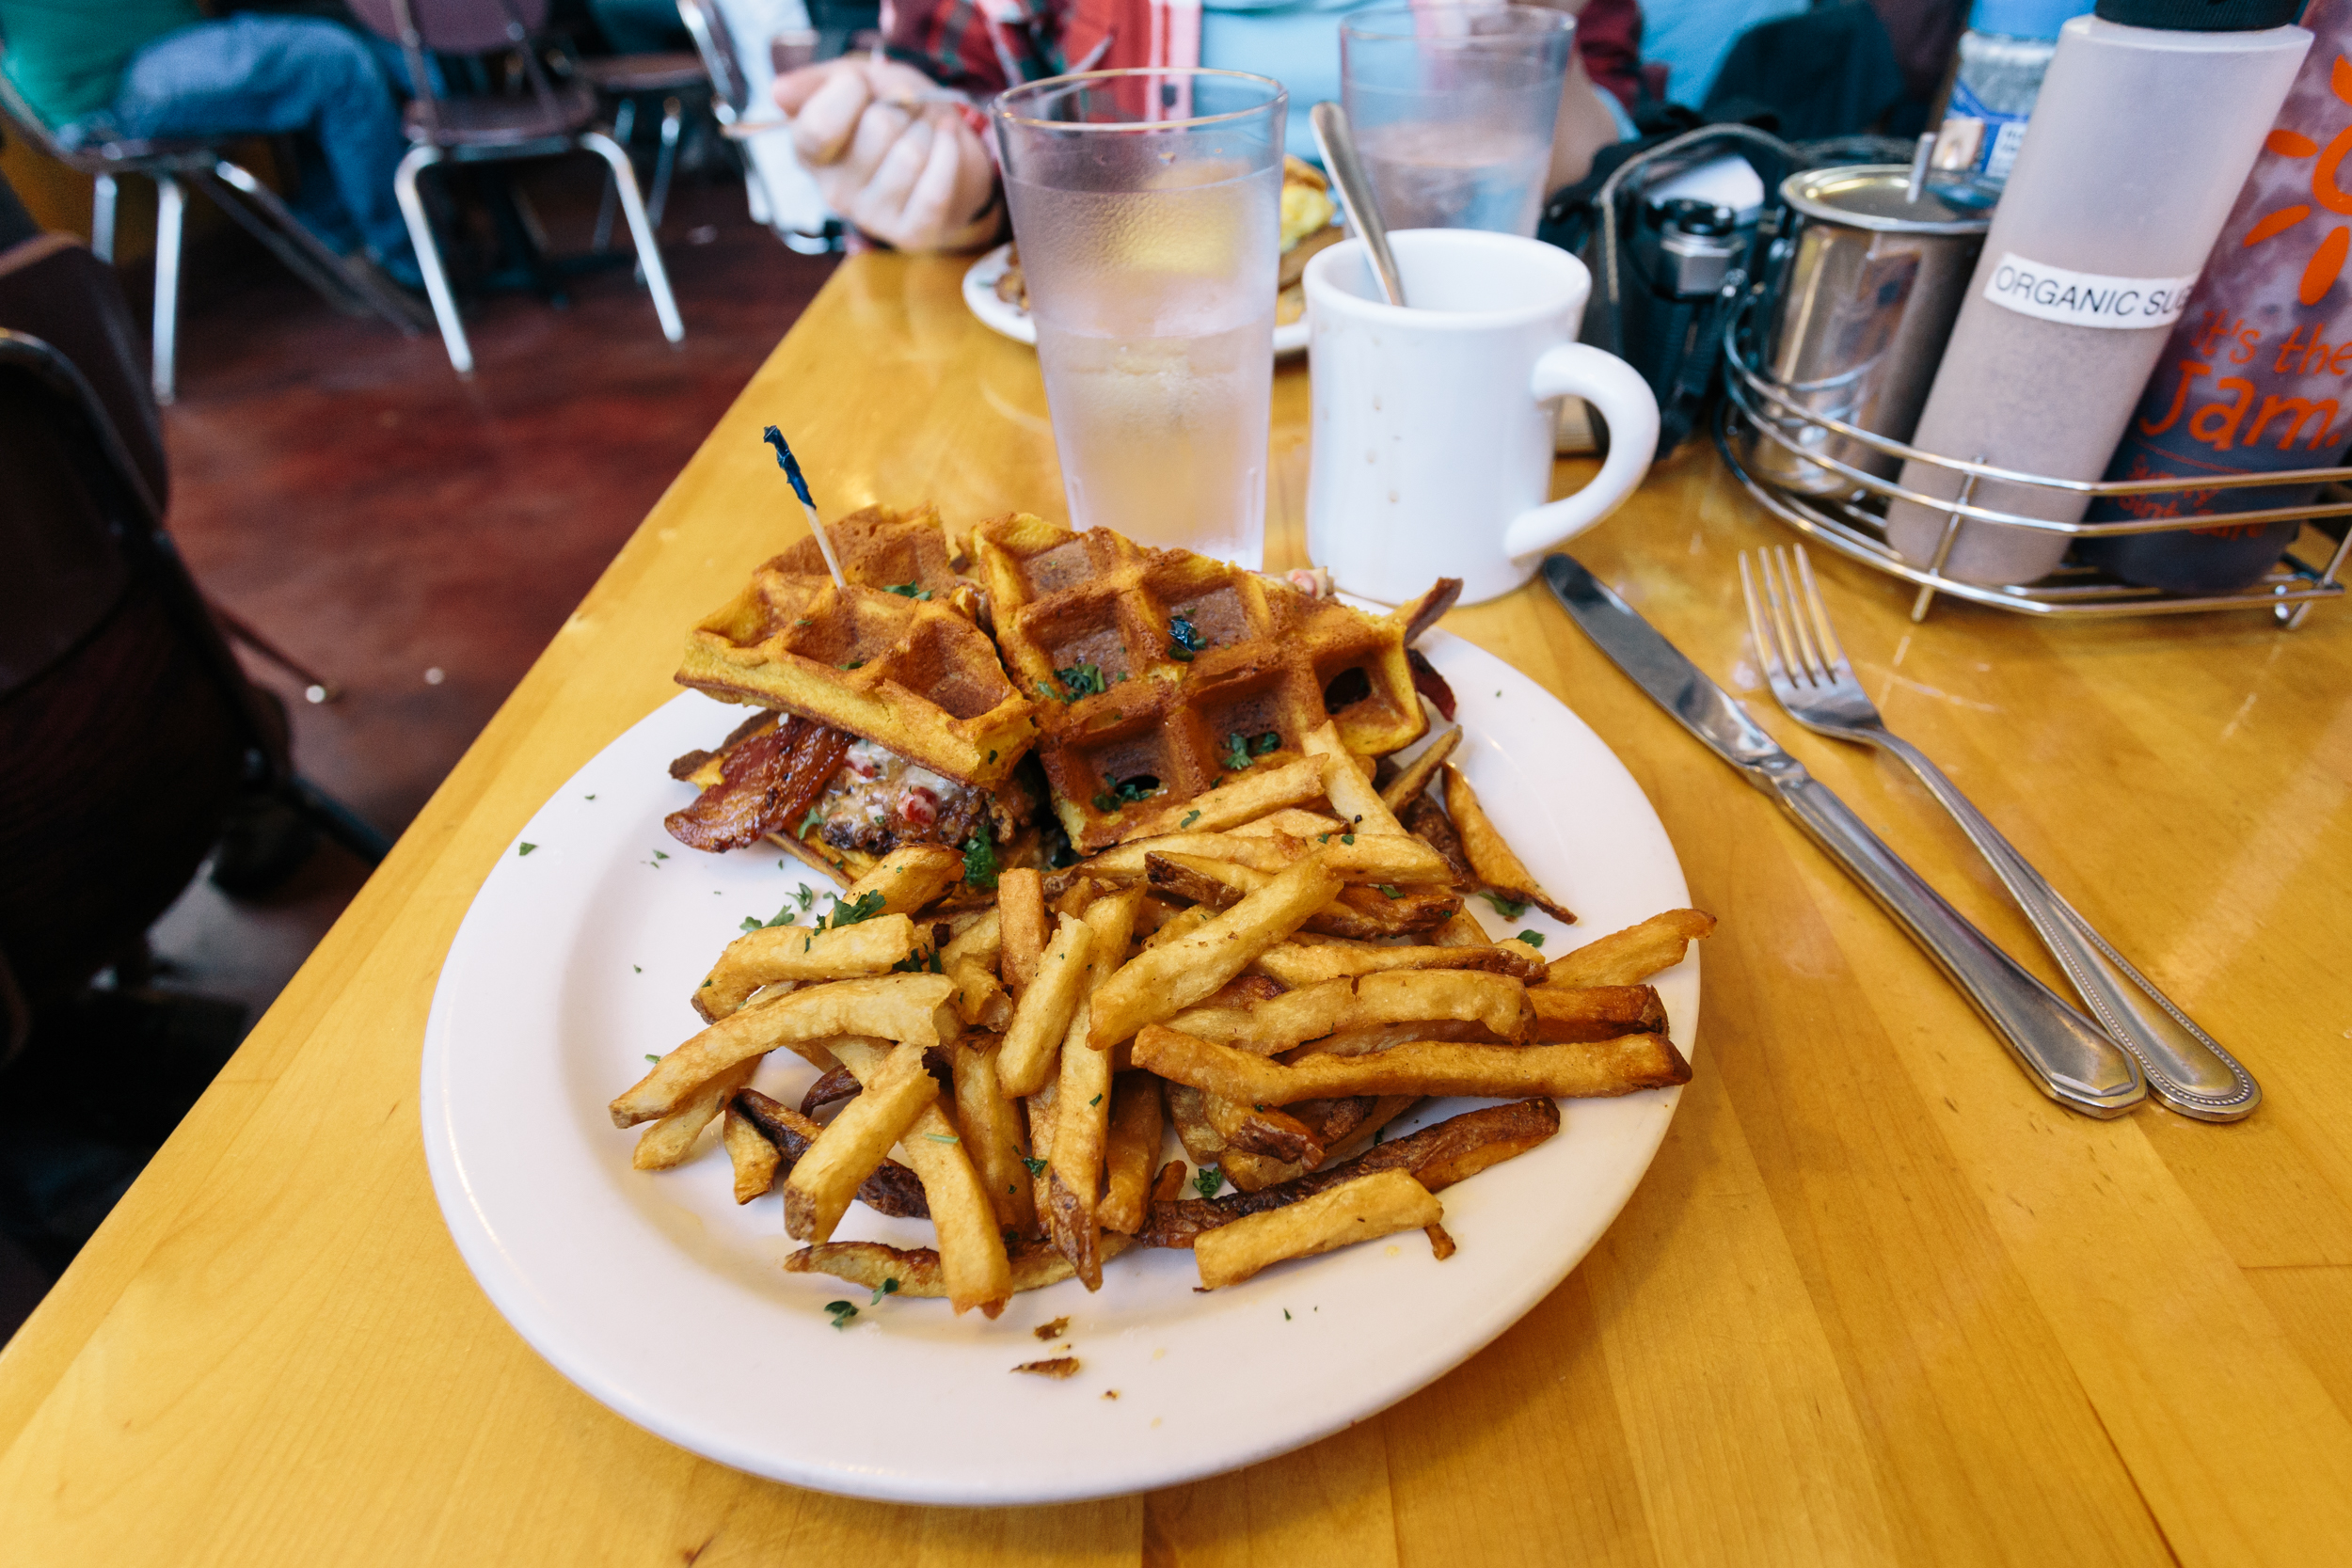 Chicken and bacon waffle sandwich with a side of fries. Quite tasty.